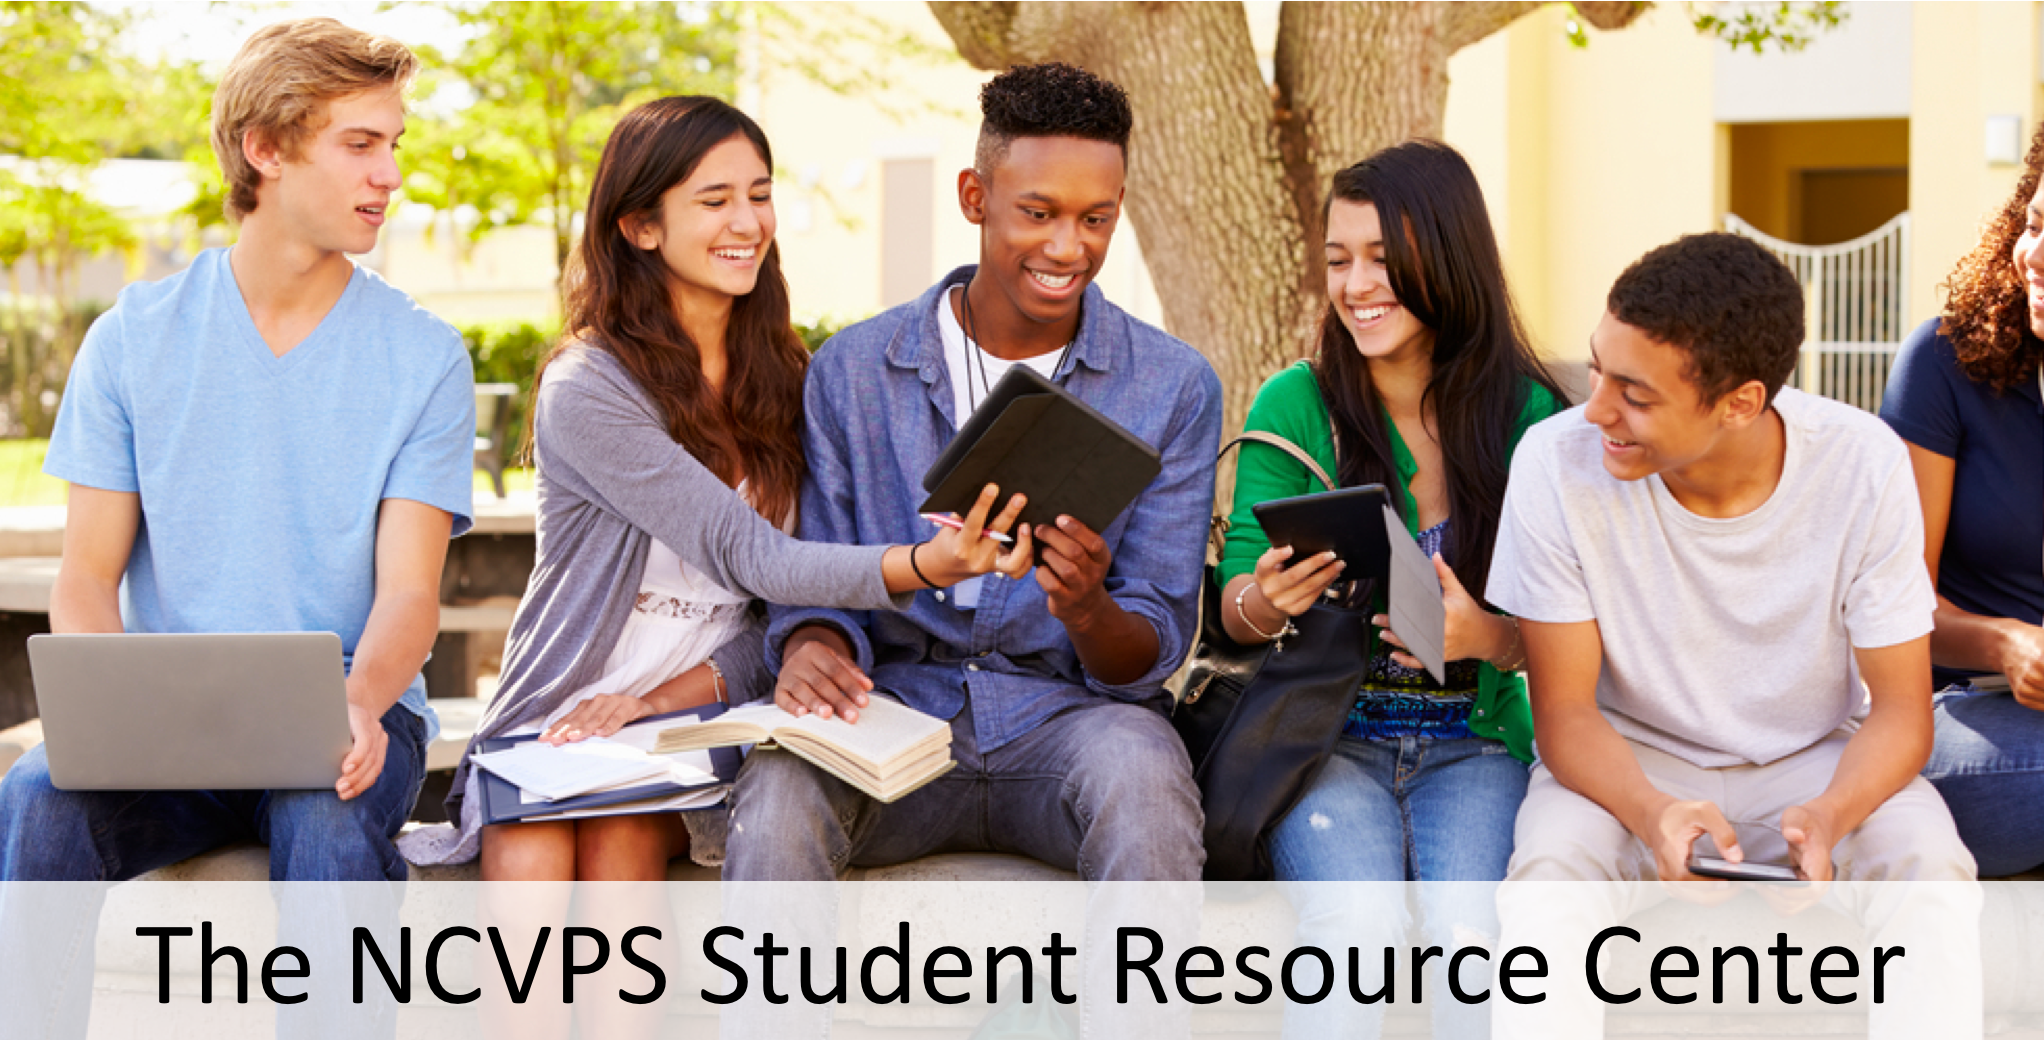 Student Resource Center Image